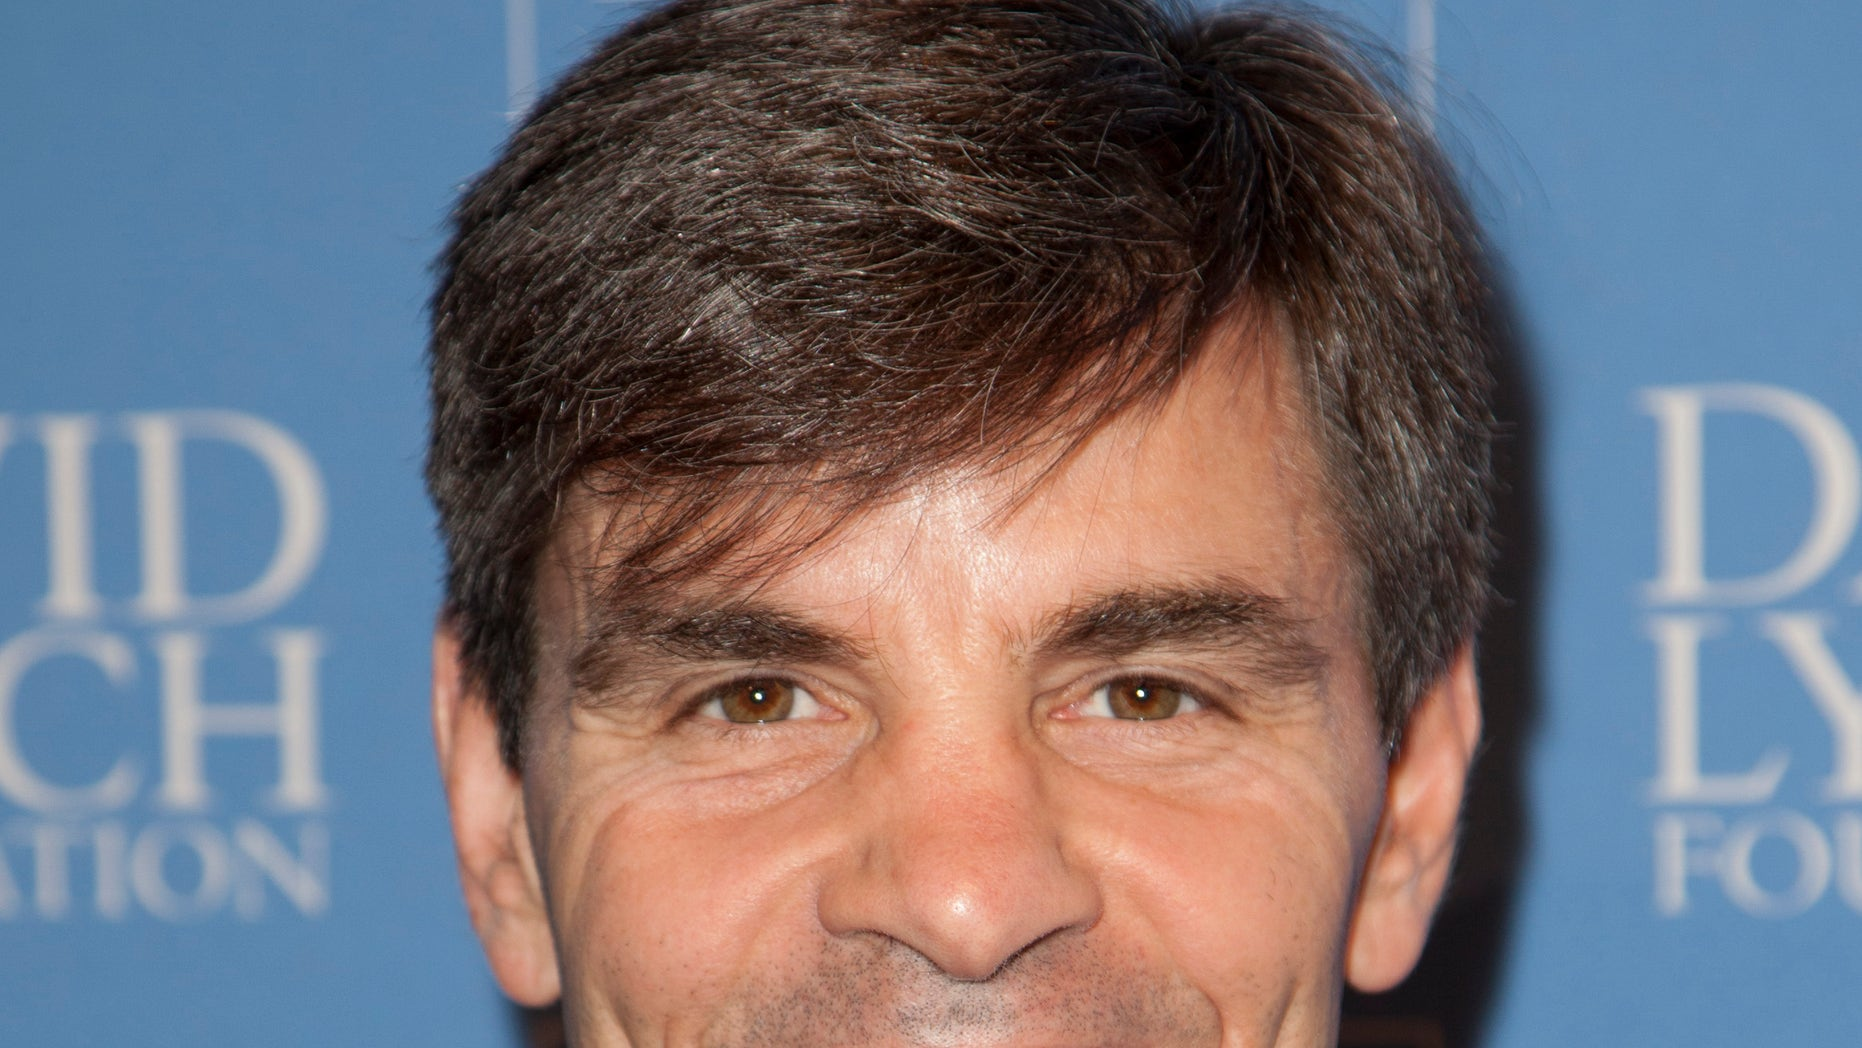 """Television journalist George Stephanopoulos attends the """"Change Begins Within: An Historic Night of Jazz to benefit The David Lynch Foundation"""" event in New York December 13, 2012."""